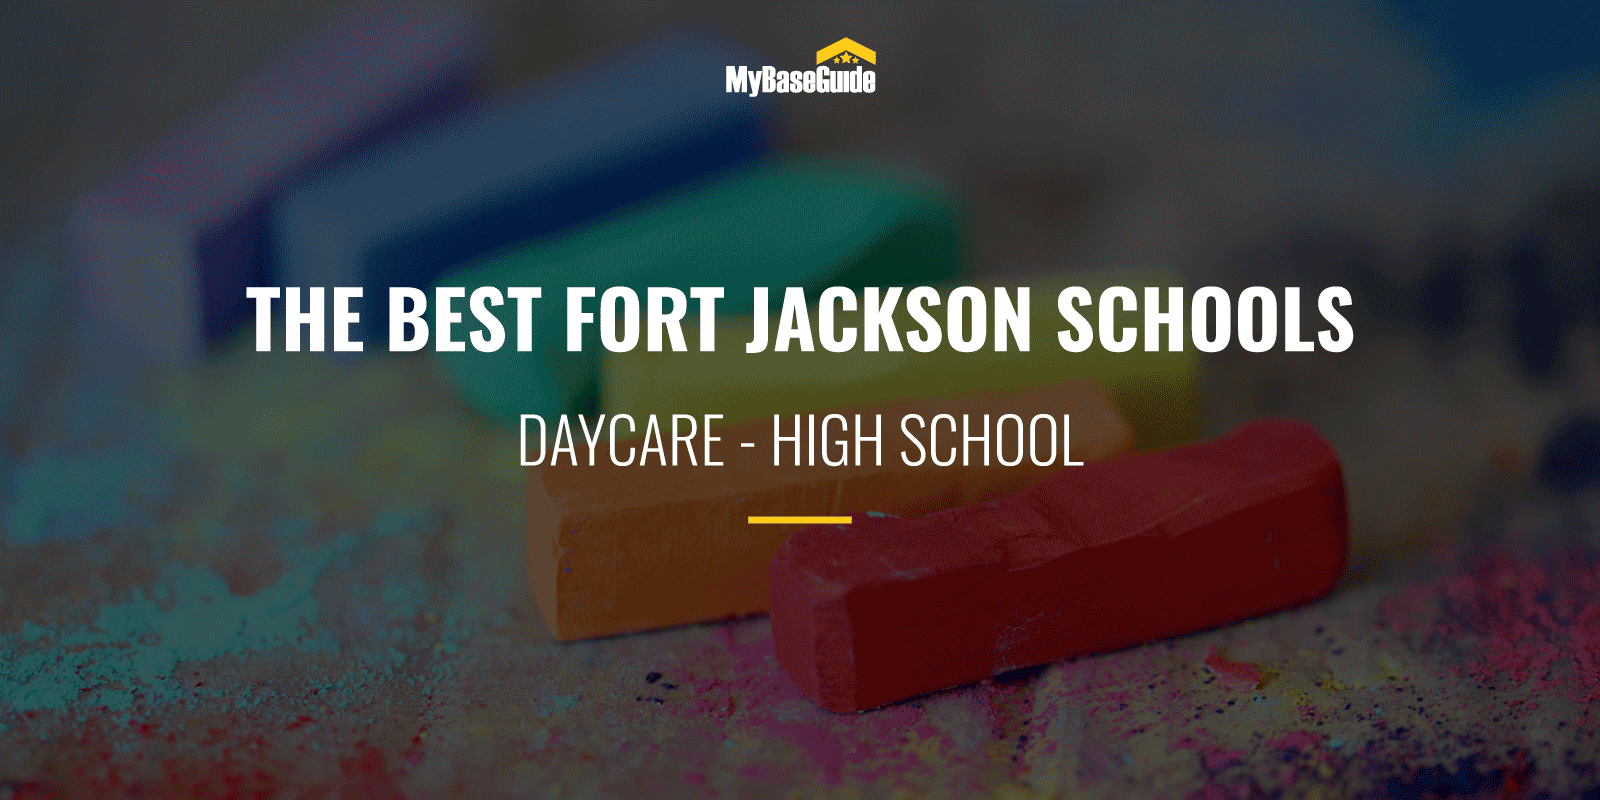 The Best Fort Jackson Schools: Daycare - High School